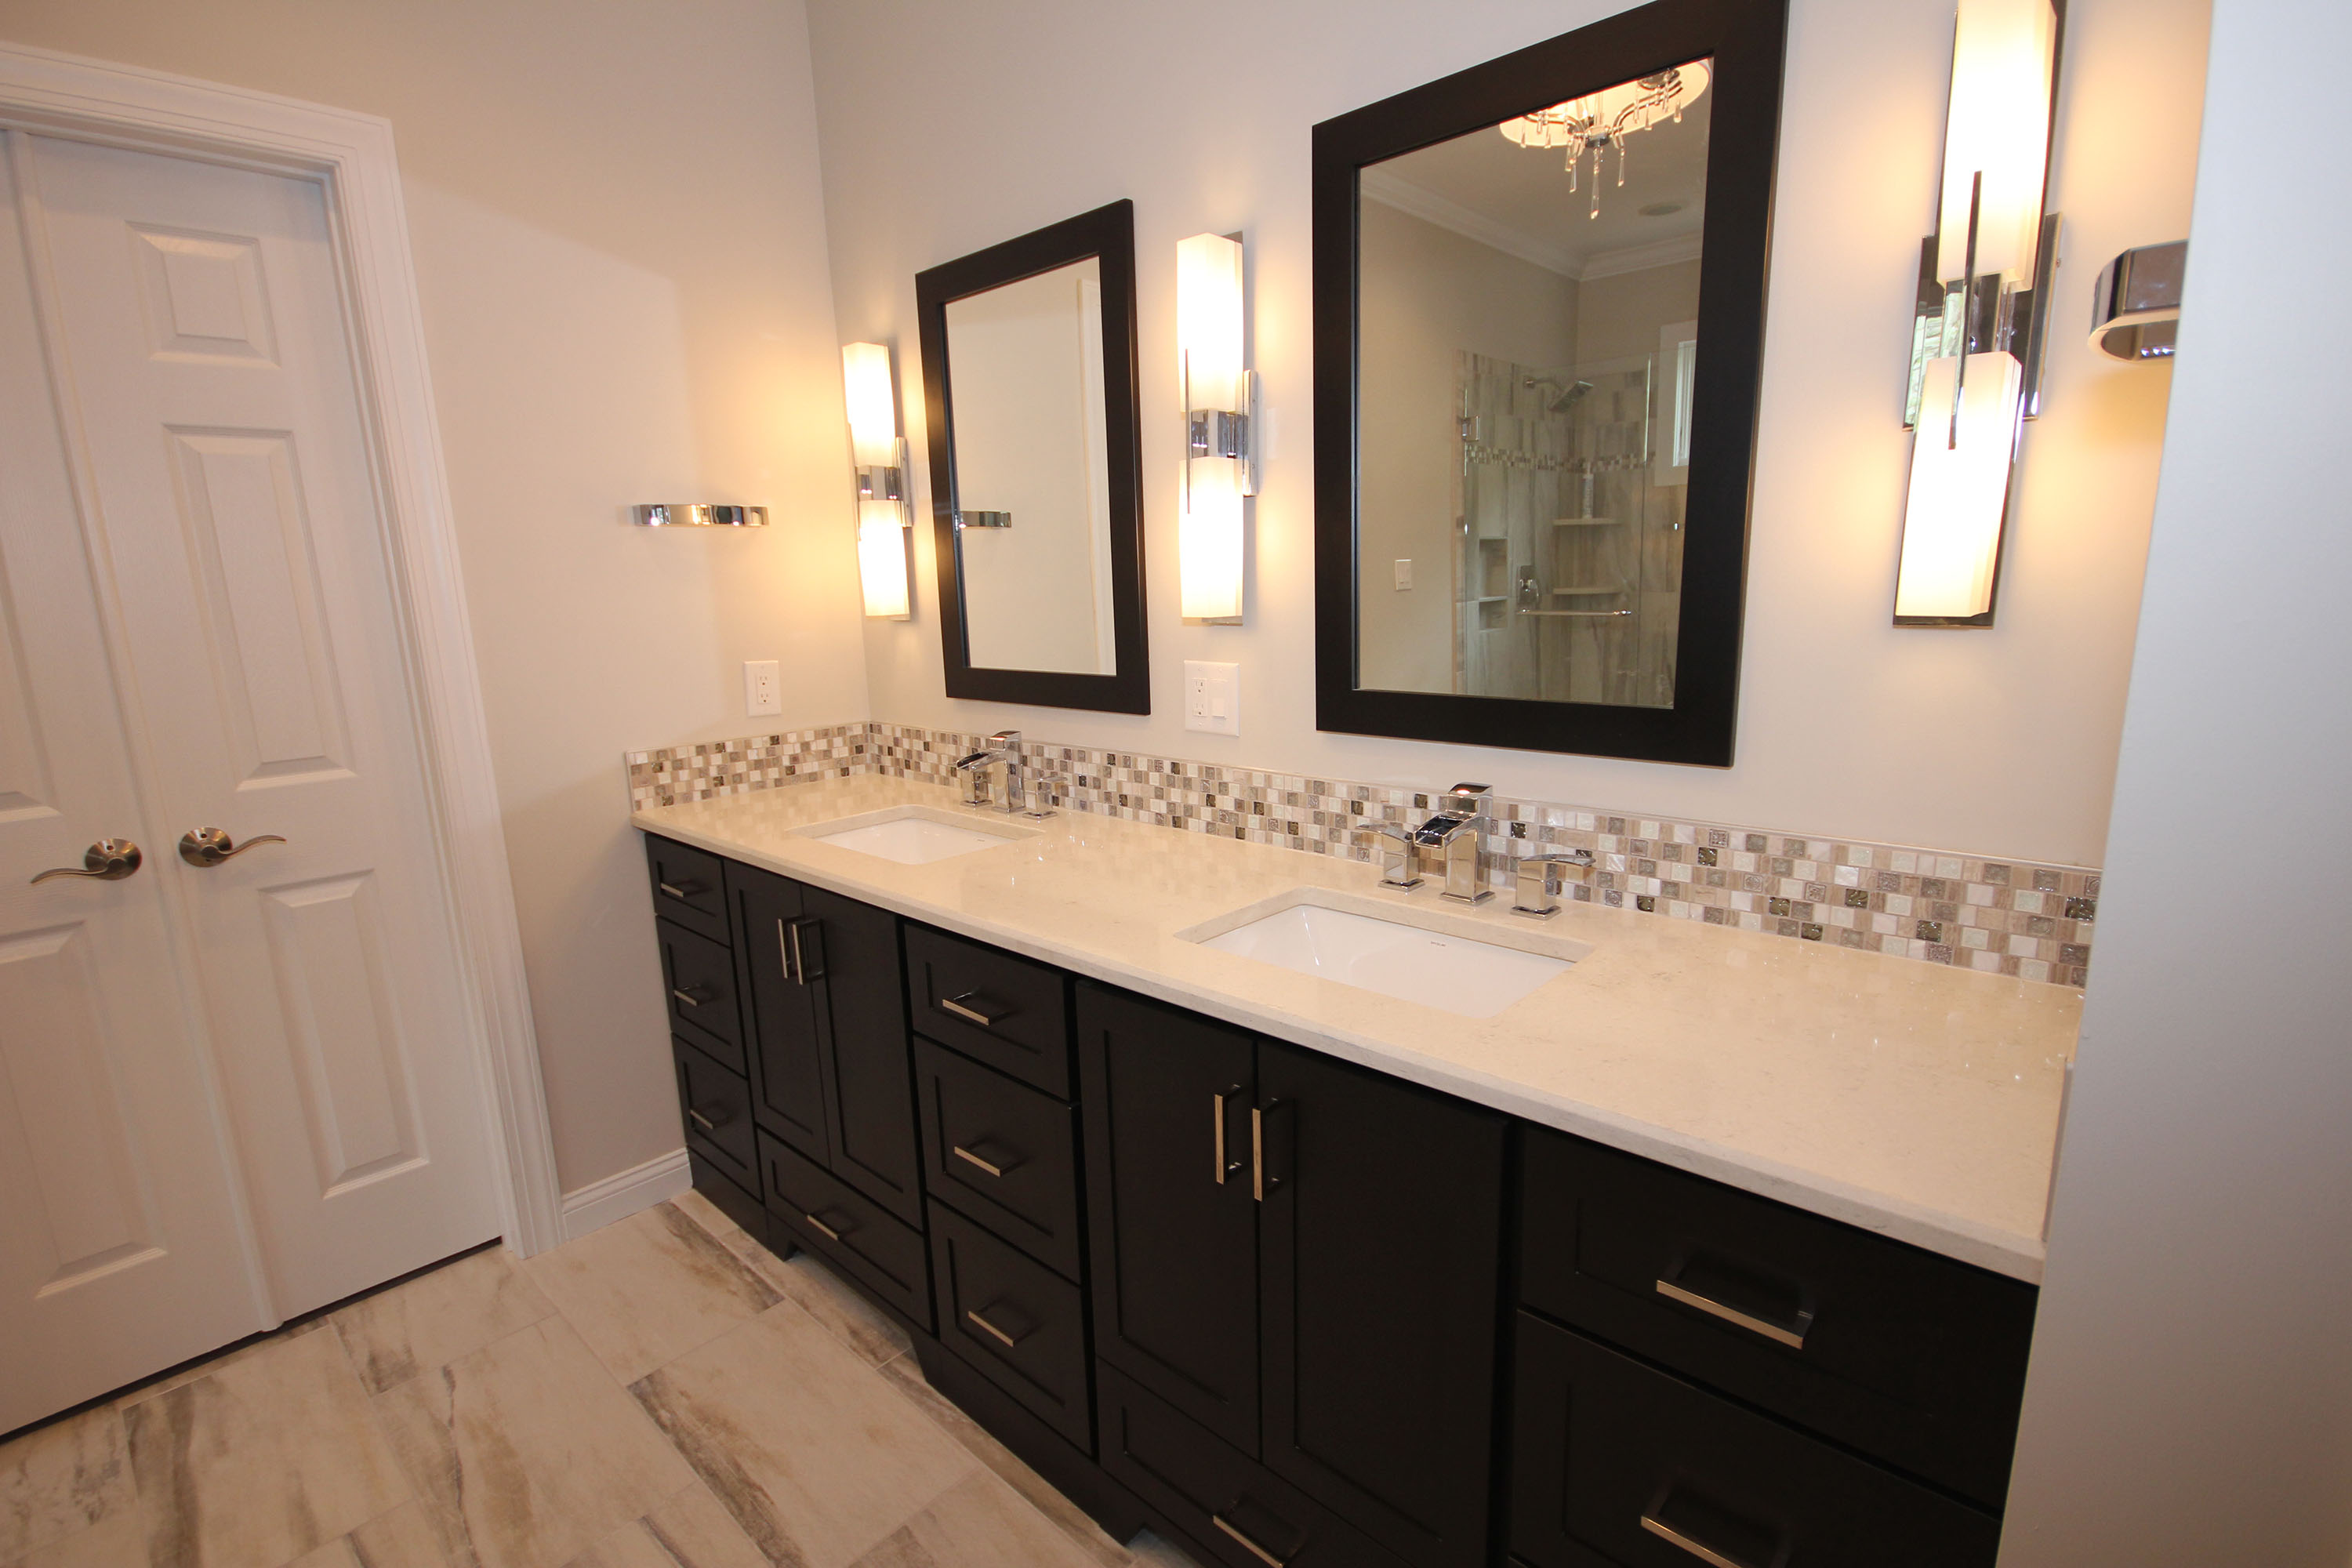 Dark cabinets with light countertops bathroom home for Dark cabinets light countertops